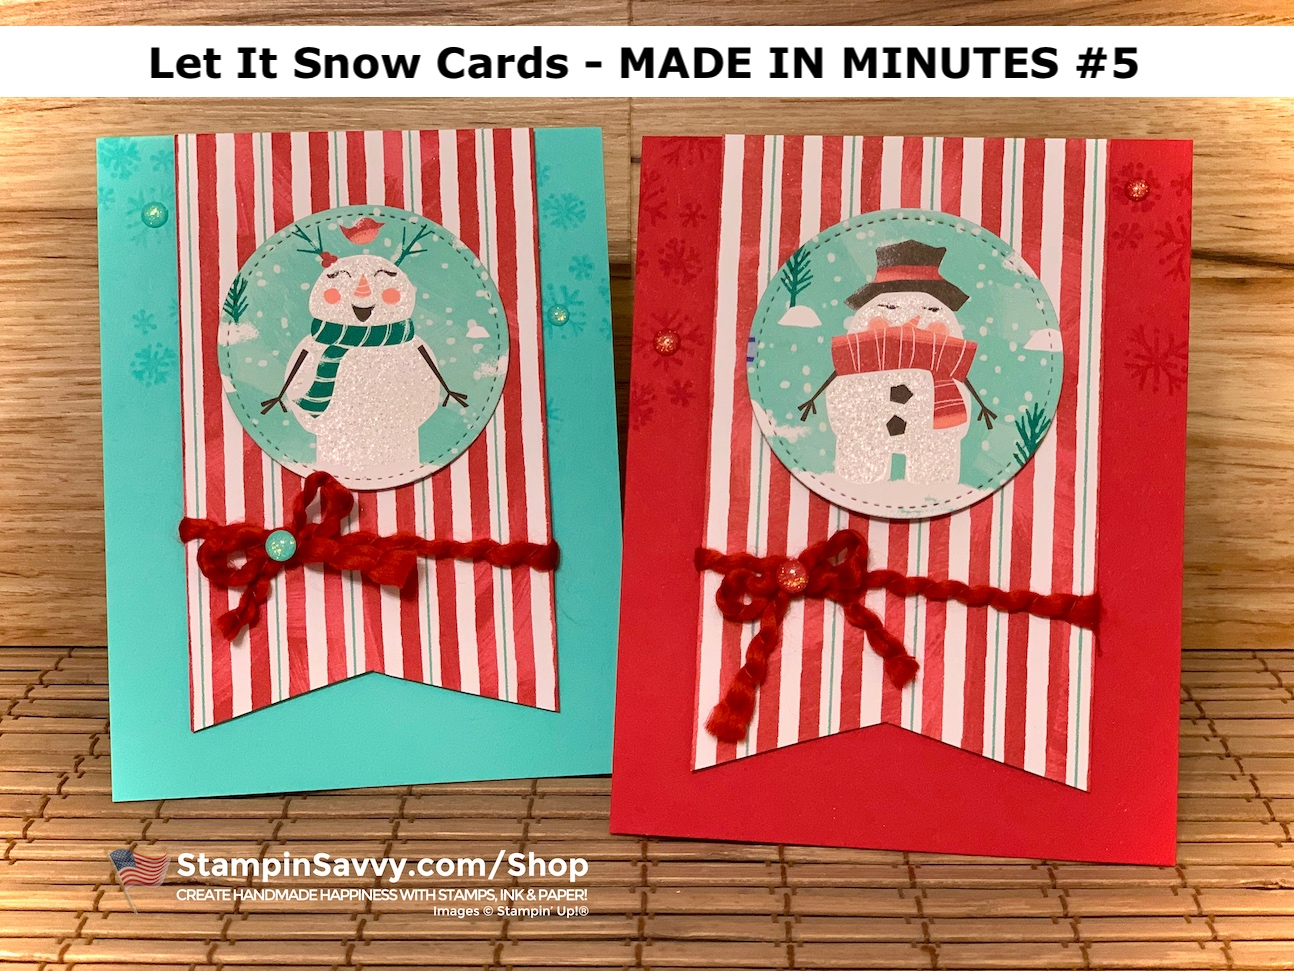 LET-IT-SNOW-CARD-IDEAS-MADE-IN-MINUTES-5-TAMMY-BEARD-STAMPIN-SAVVY-STAMPIN-UP-2